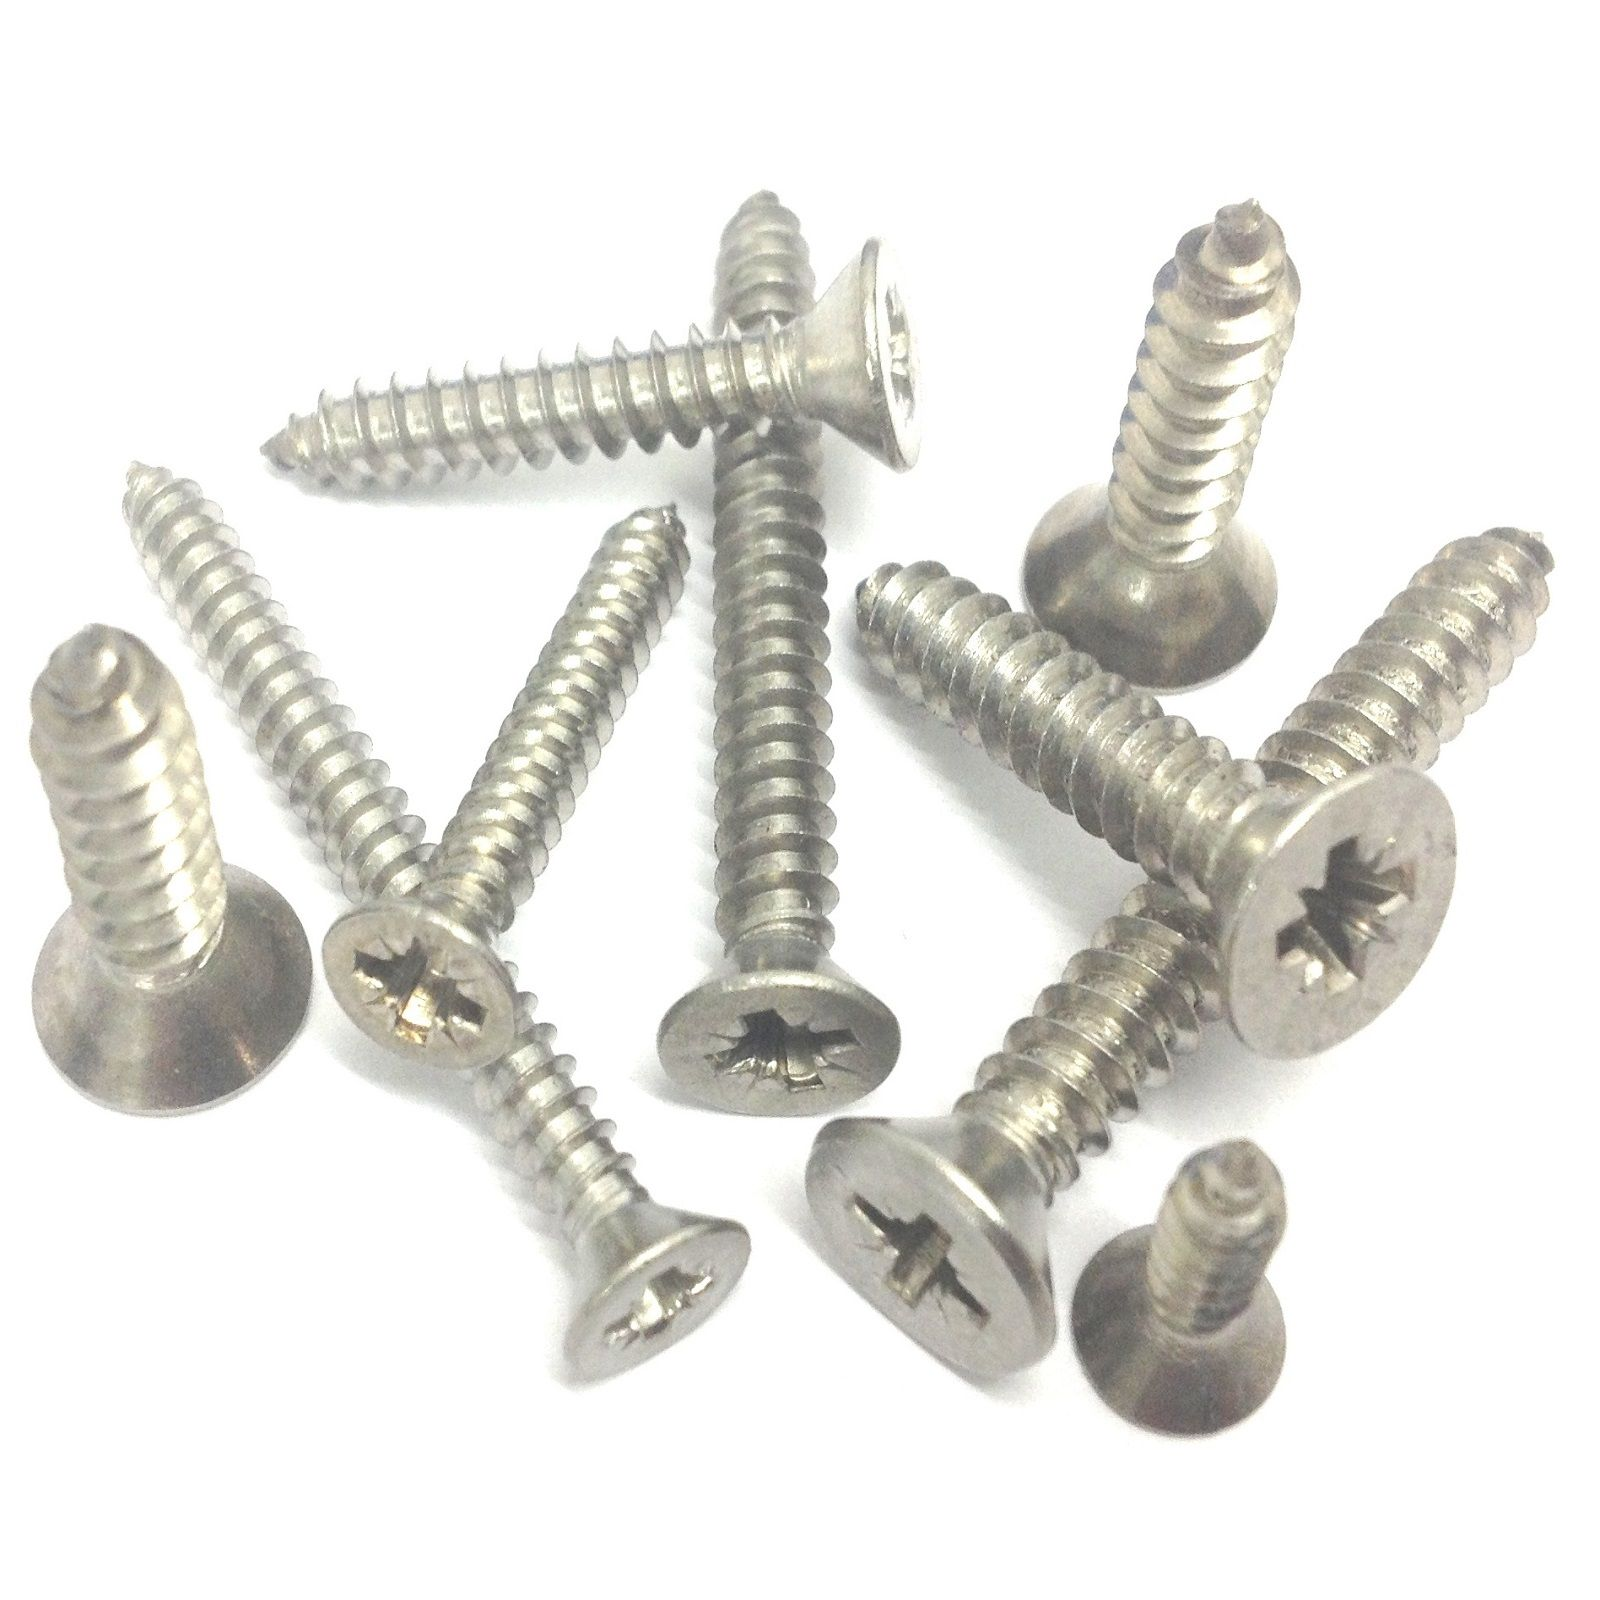 No.4 x 1//4 Self Tapping Screws Pozi Countersunk A2 Stainless Steel Pack Of 10